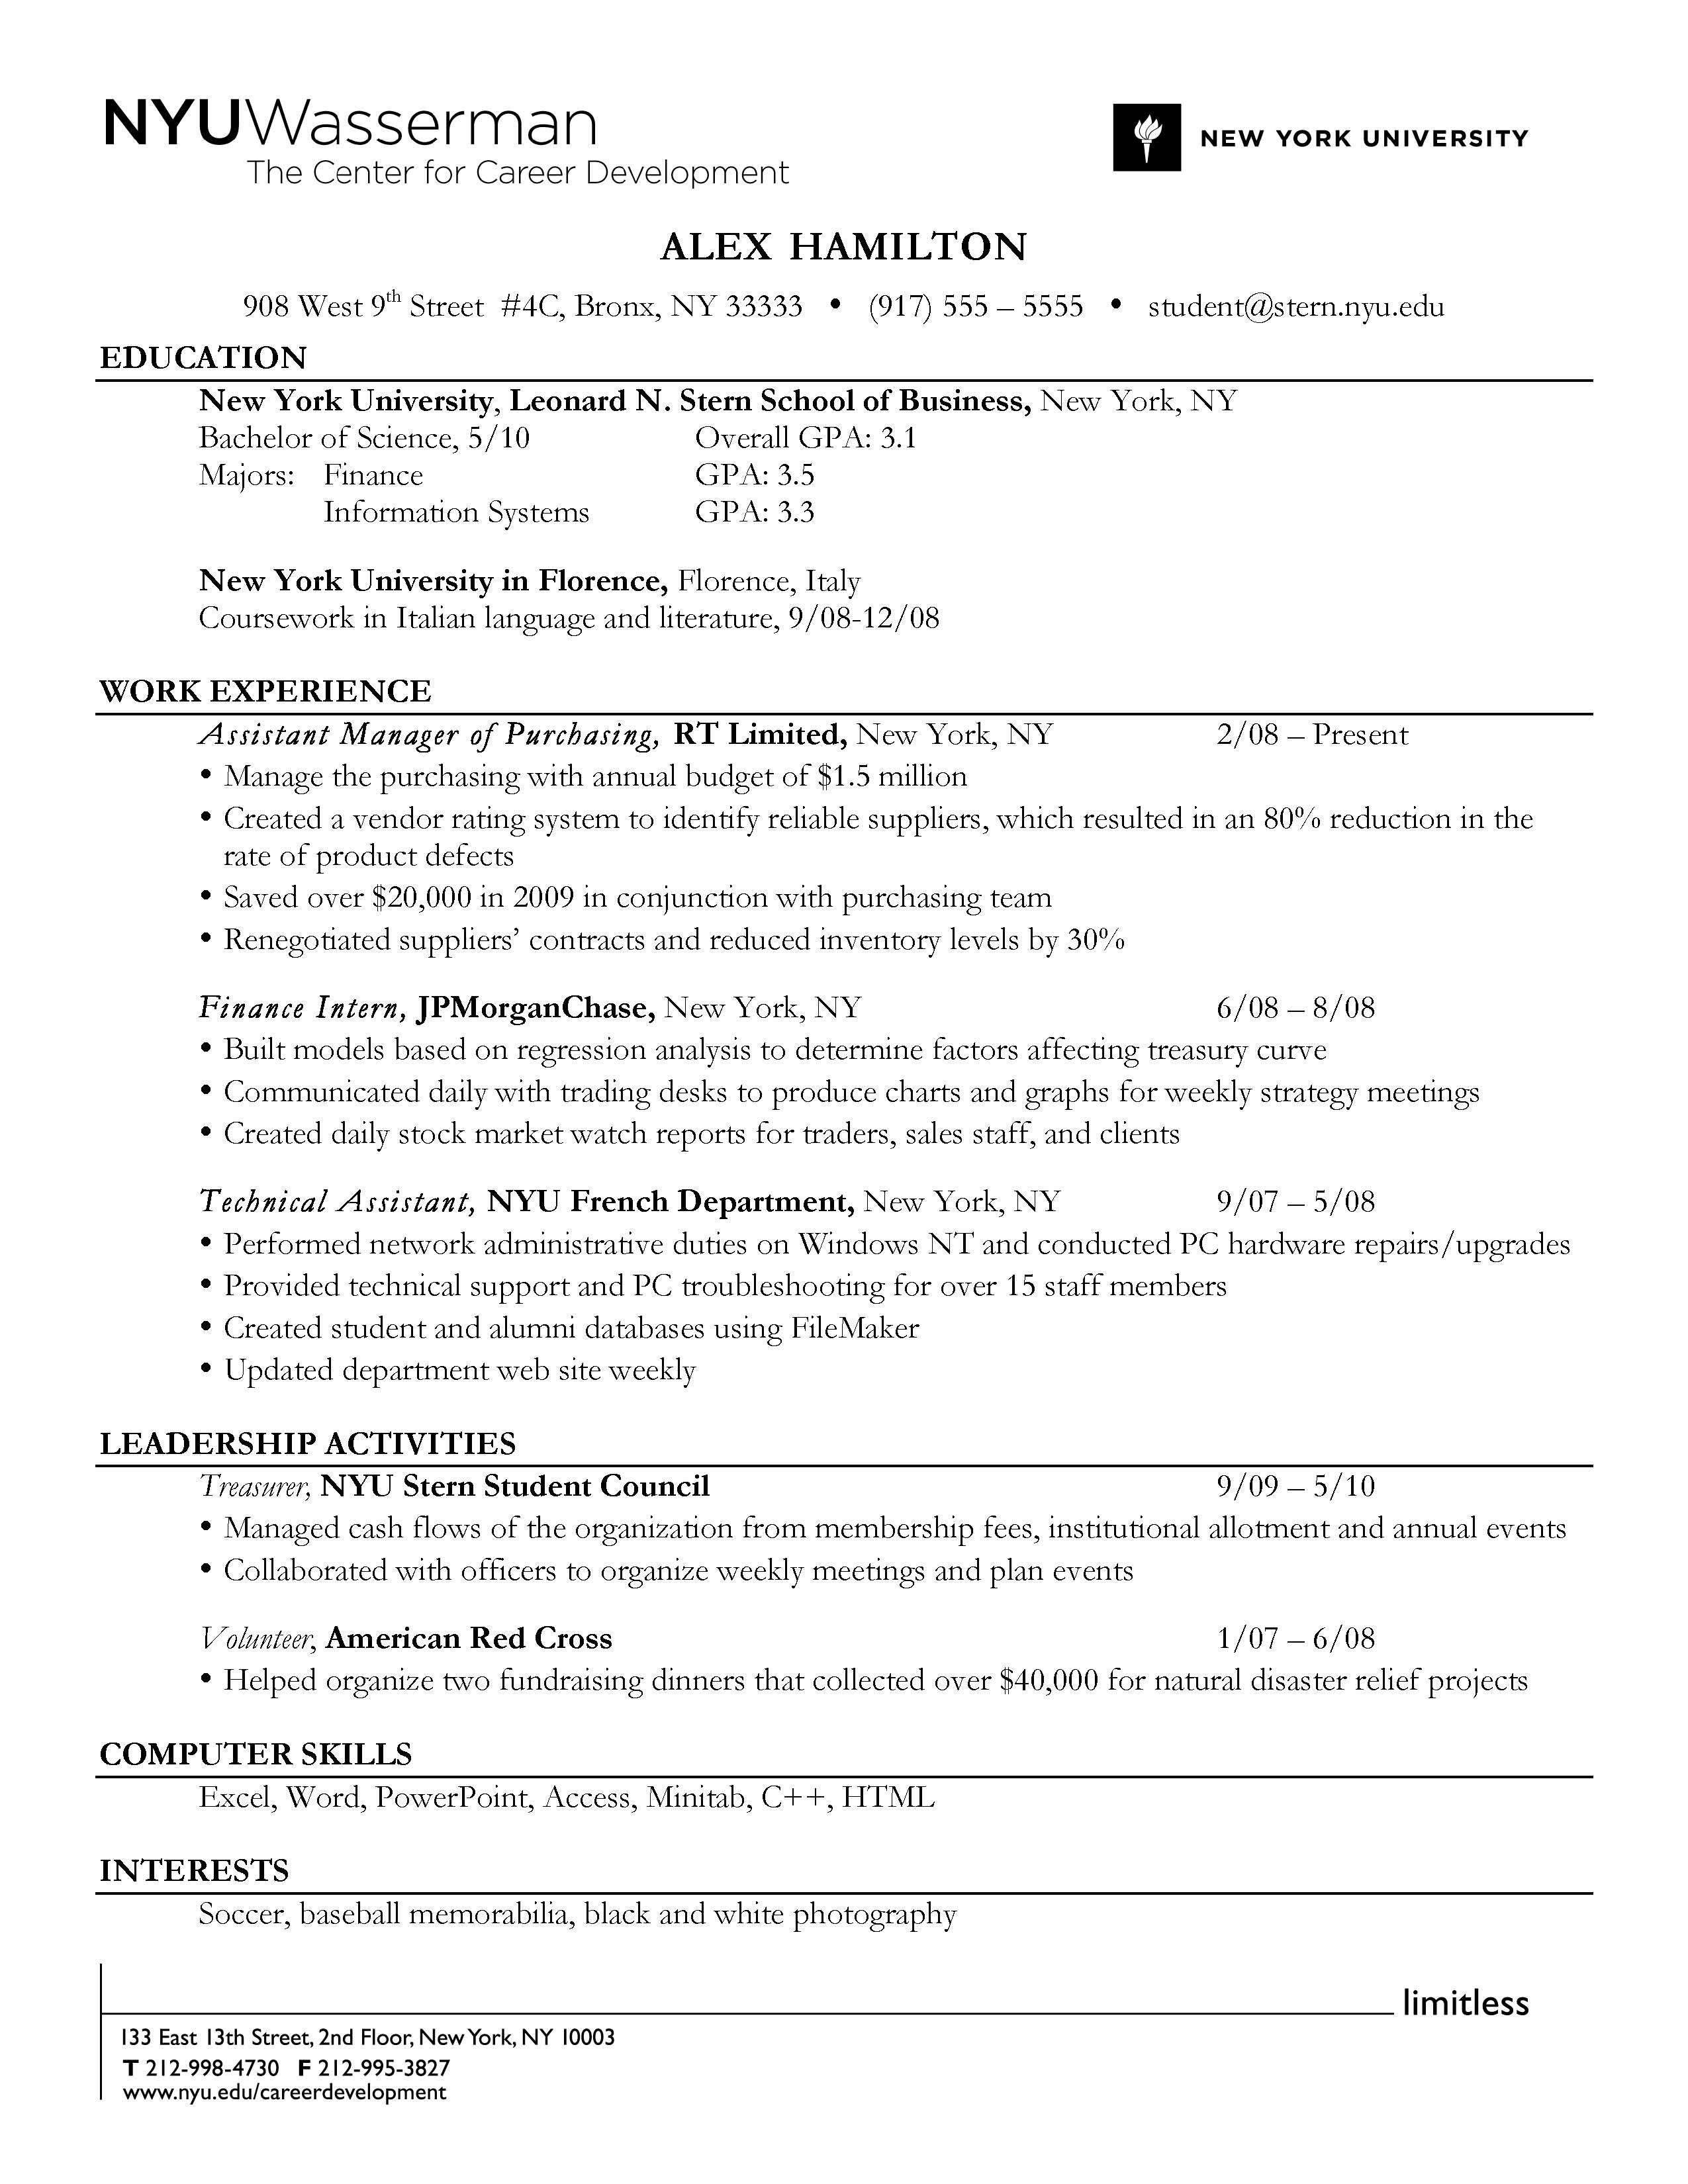 examples of leadership activities for resume